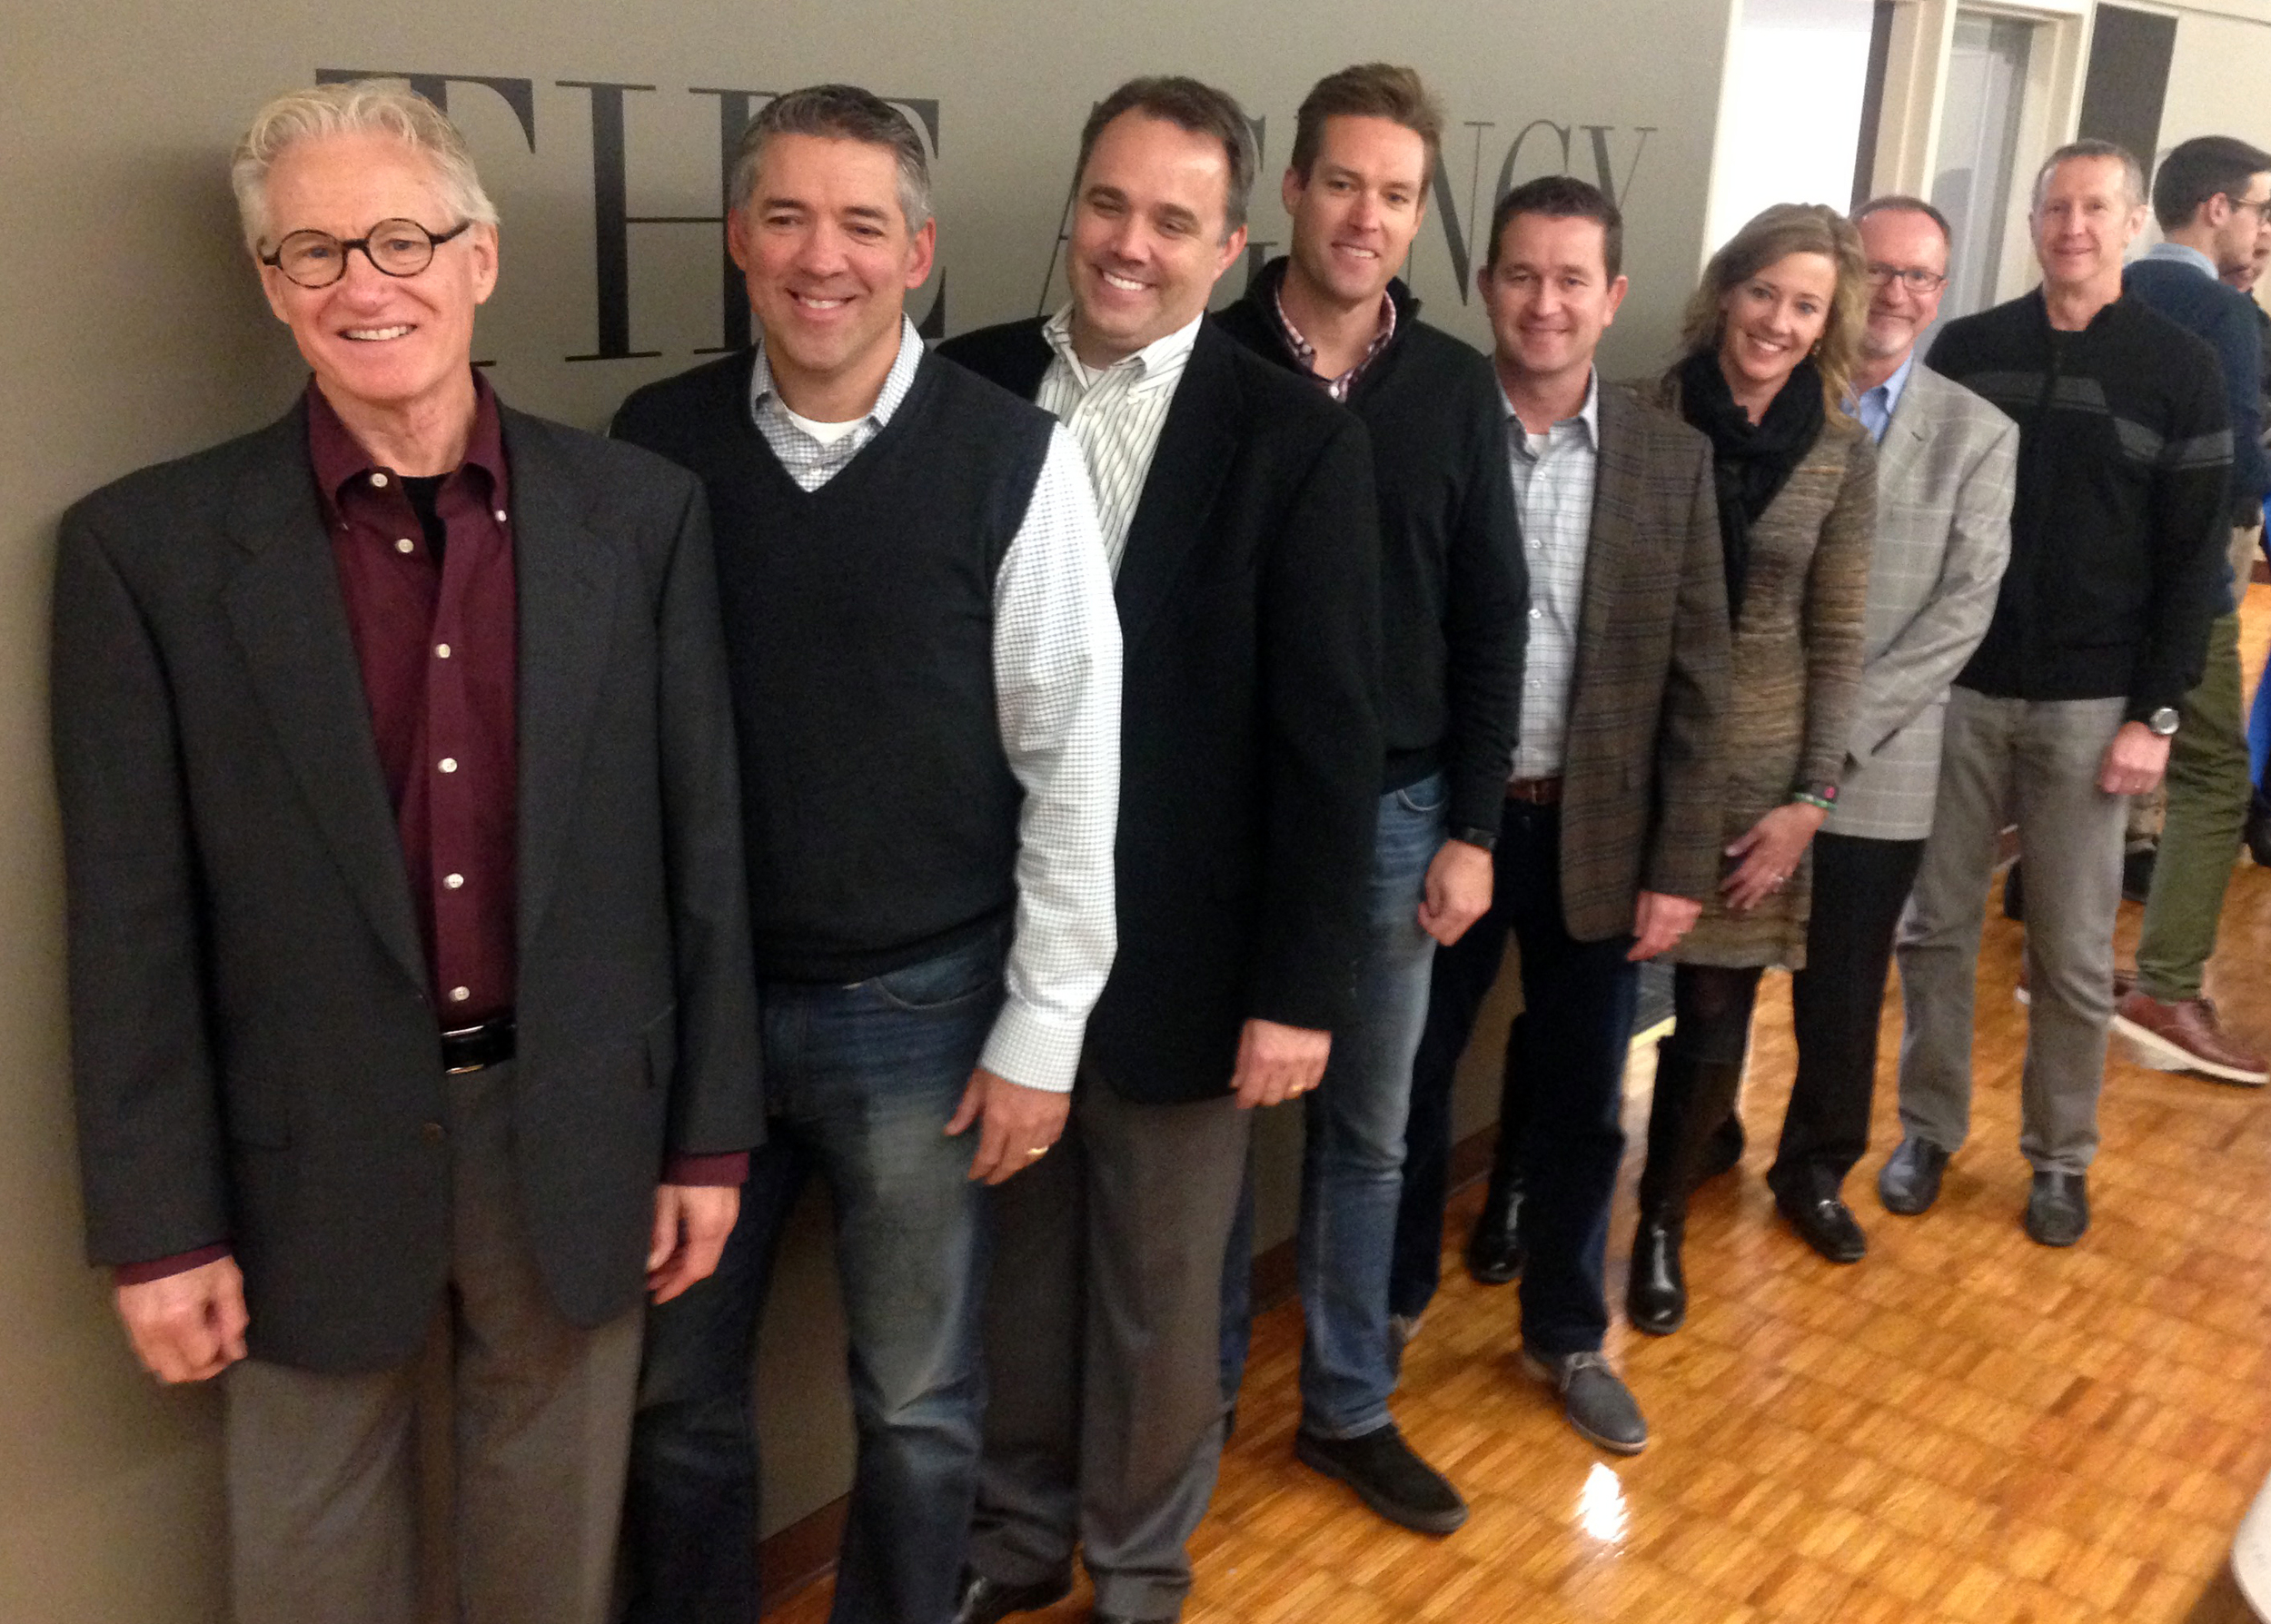 Founders of The Agency attended the ribbon cutting during J-School Generations. From left: Don Hunter; Phil Bressler and Jim Brown of Muller Bressler Brown; Jan-Eric Anderson of Callahan Creek; Jason Parks of Barkley; Ali Mahaffy and Rand Mikulecky of Sullivan Higdon & Sink; and Jim Chastain of Reality Check.